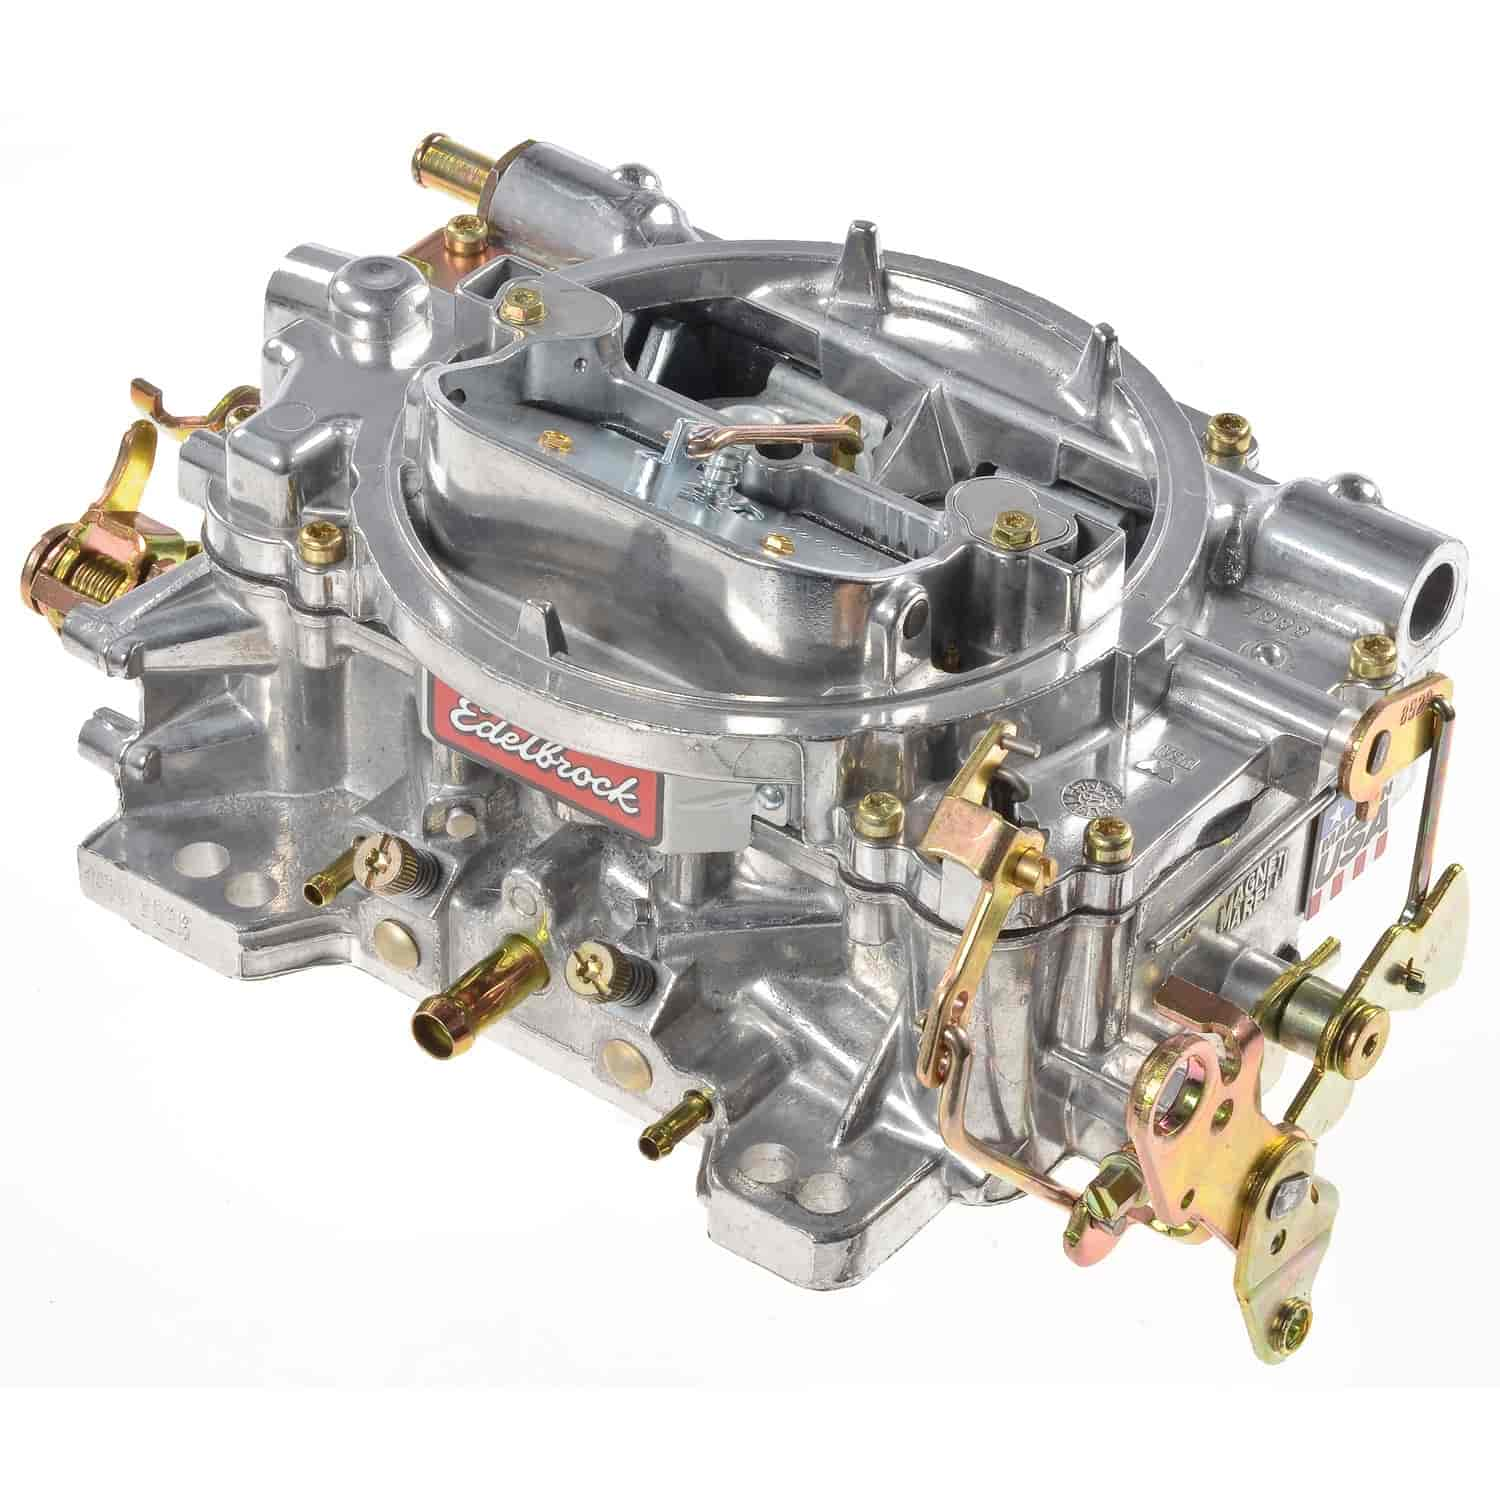 Edelbrock 1404 - Edelbrock Performer Carburetors